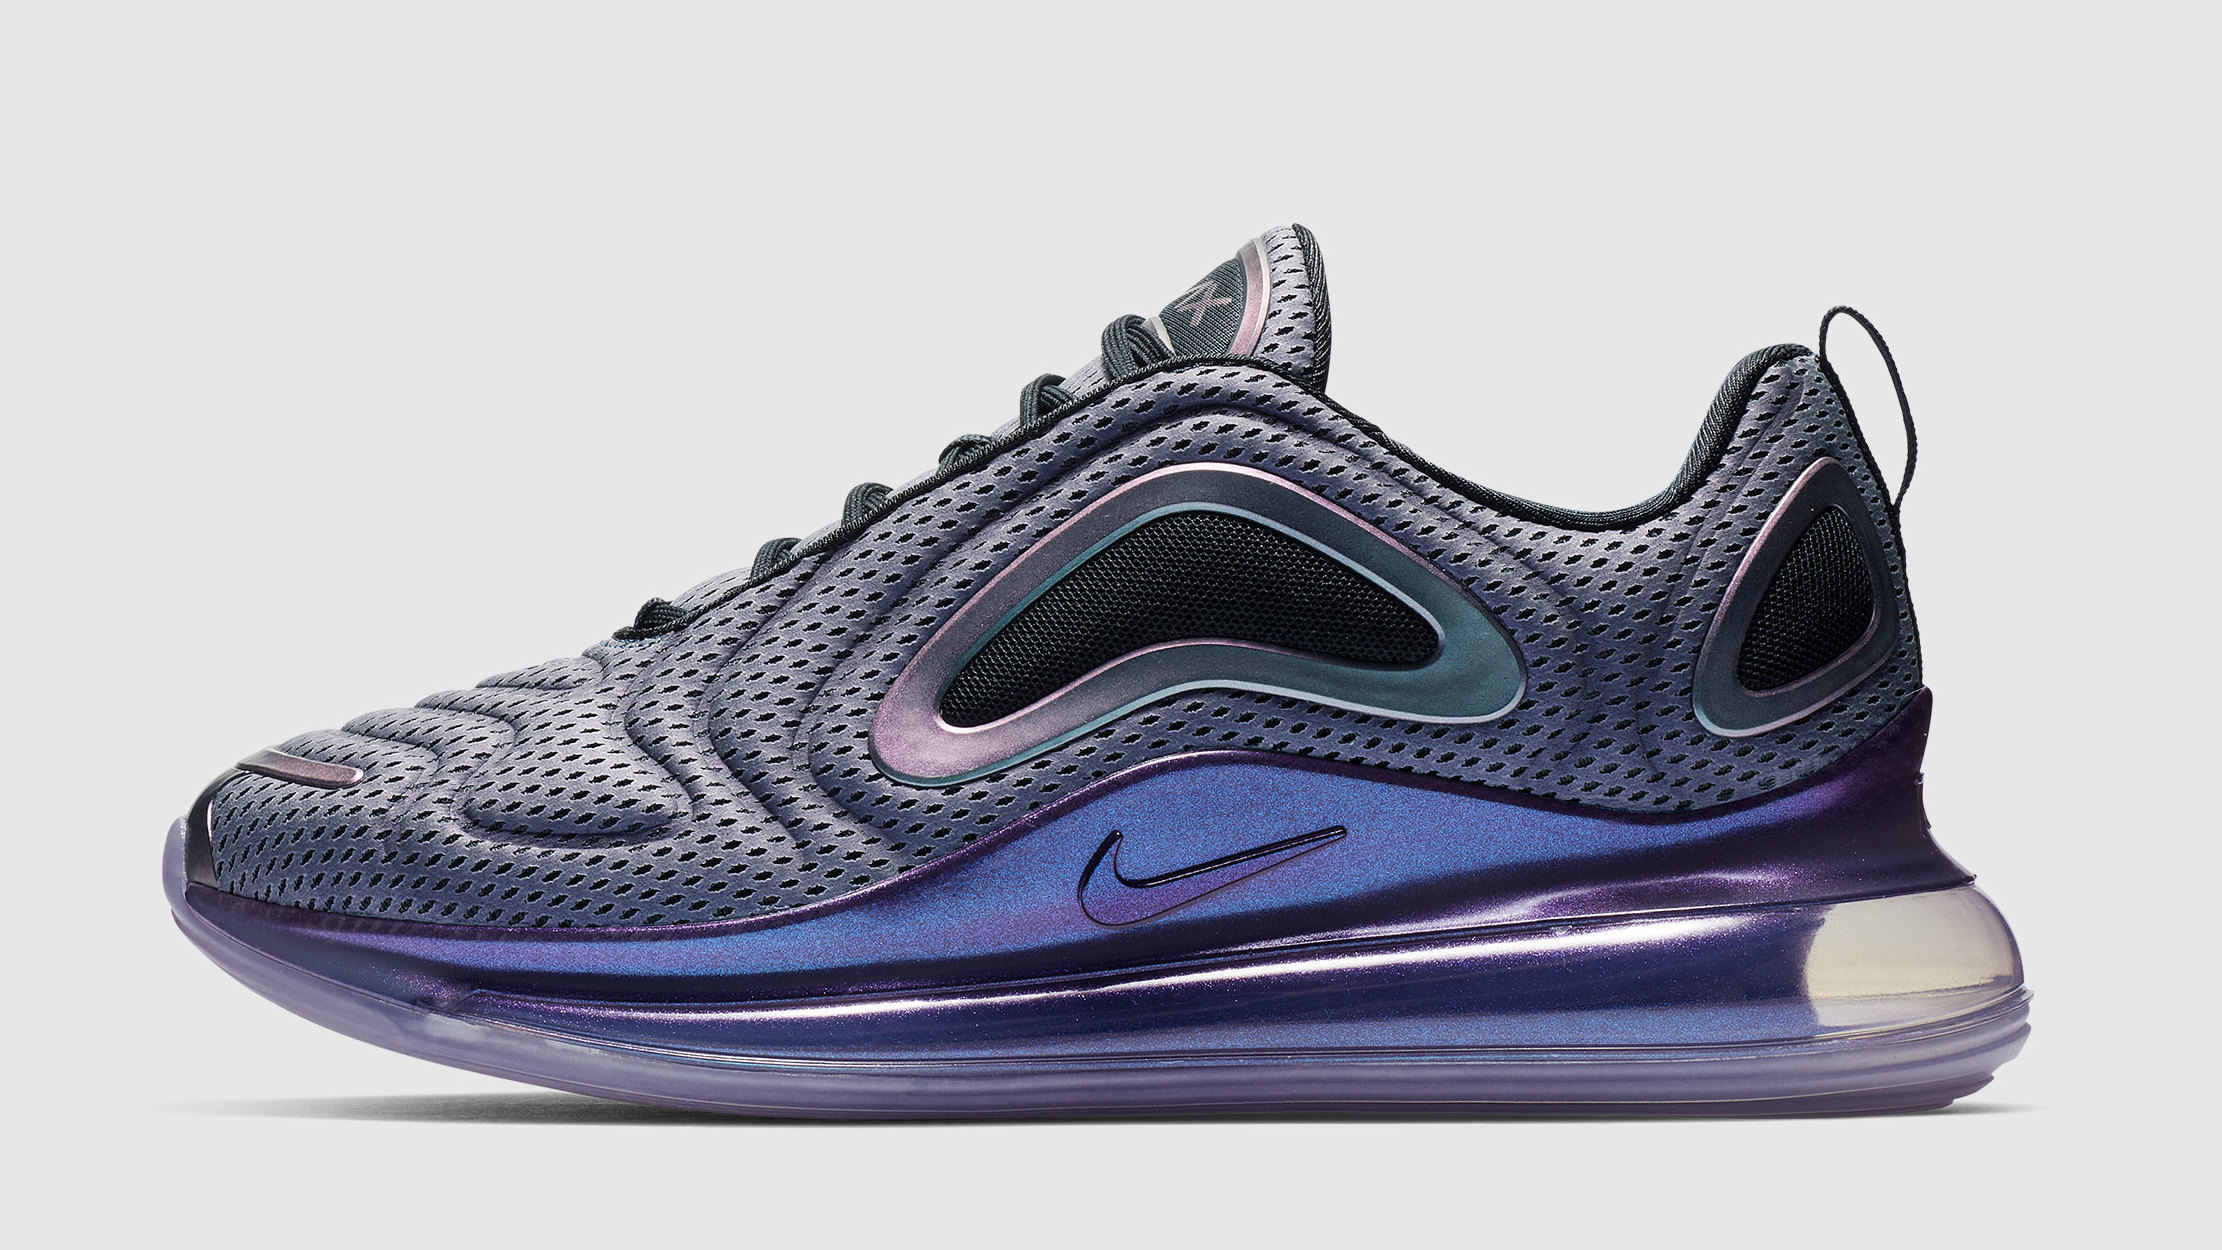 36c7780cee8 Nike Air Max 720 Launch Colorways Release Date